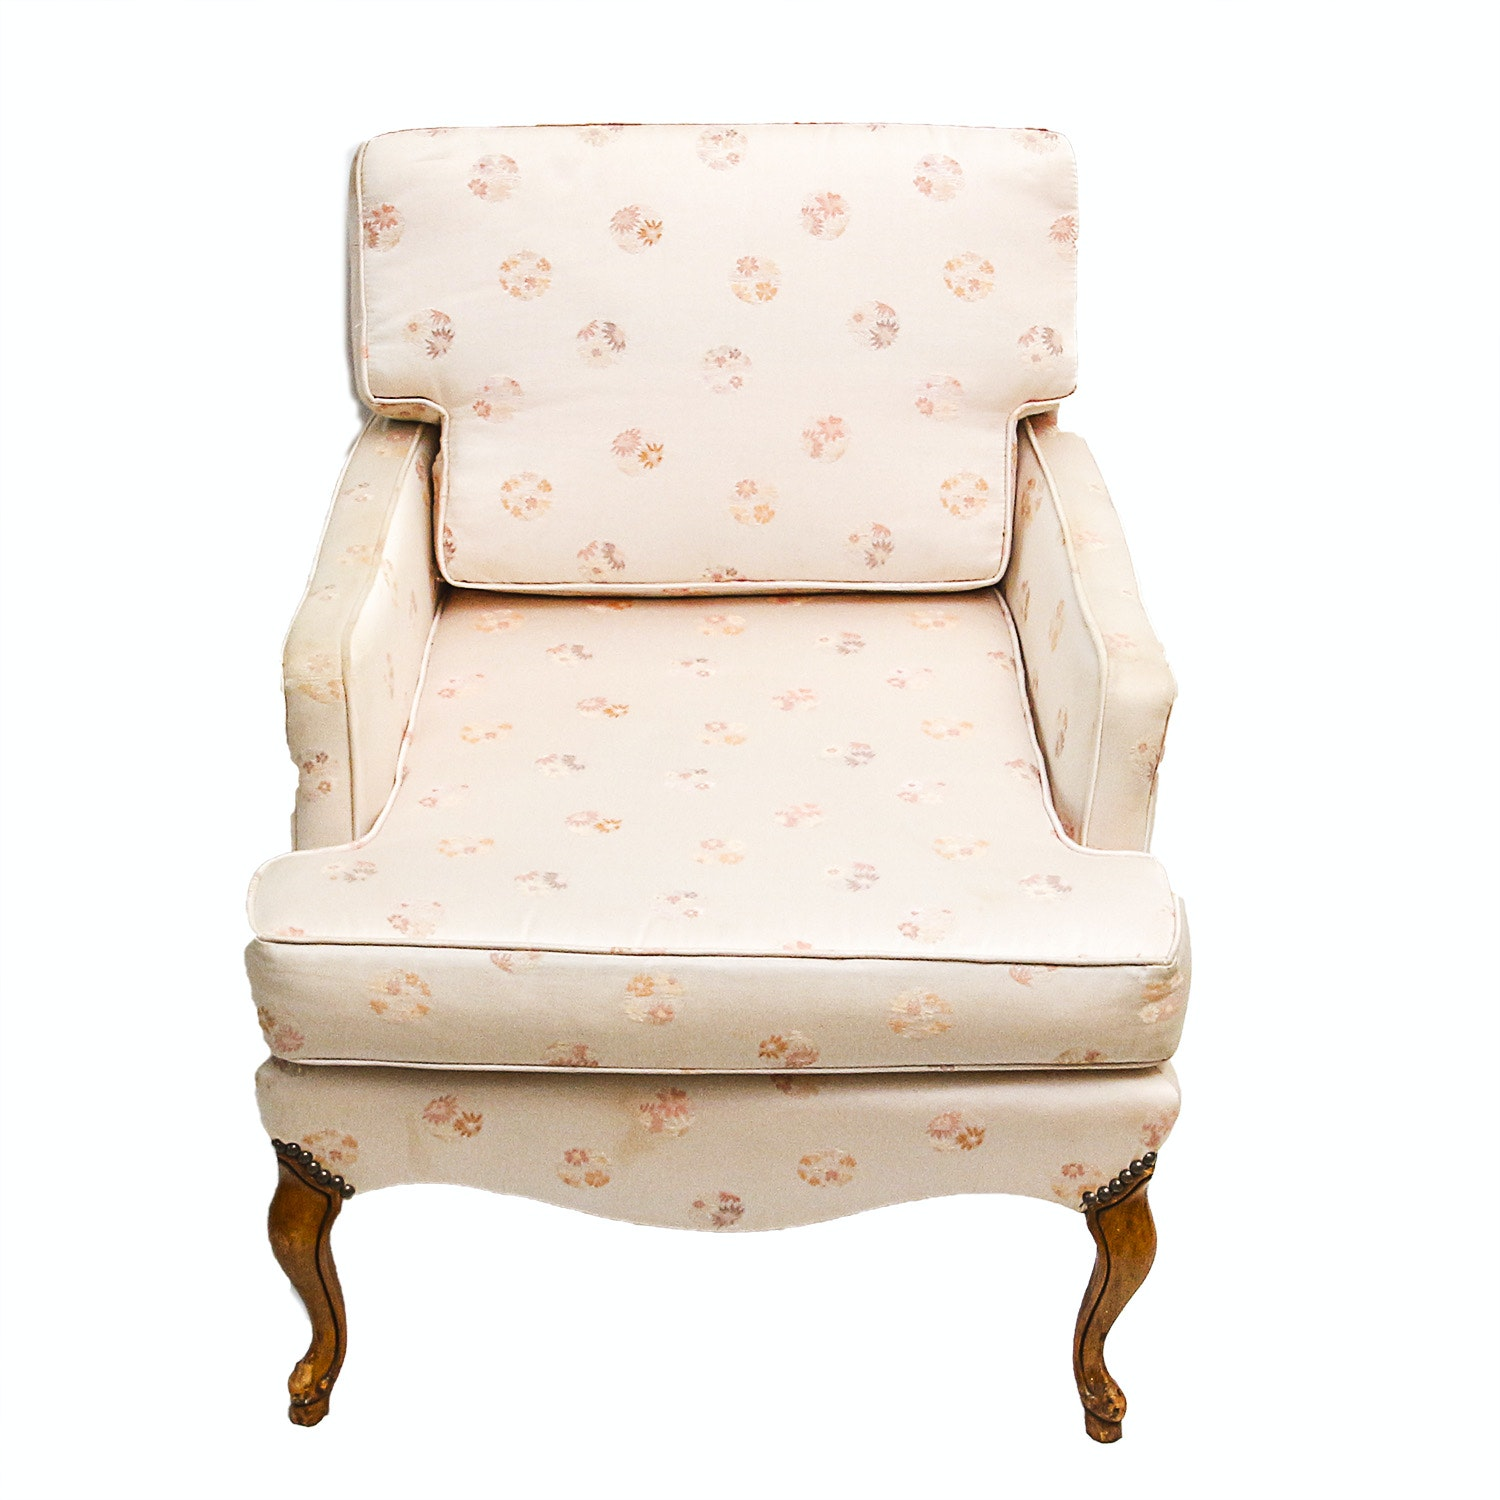 Blush Pink Silk Upholstered Chair ...